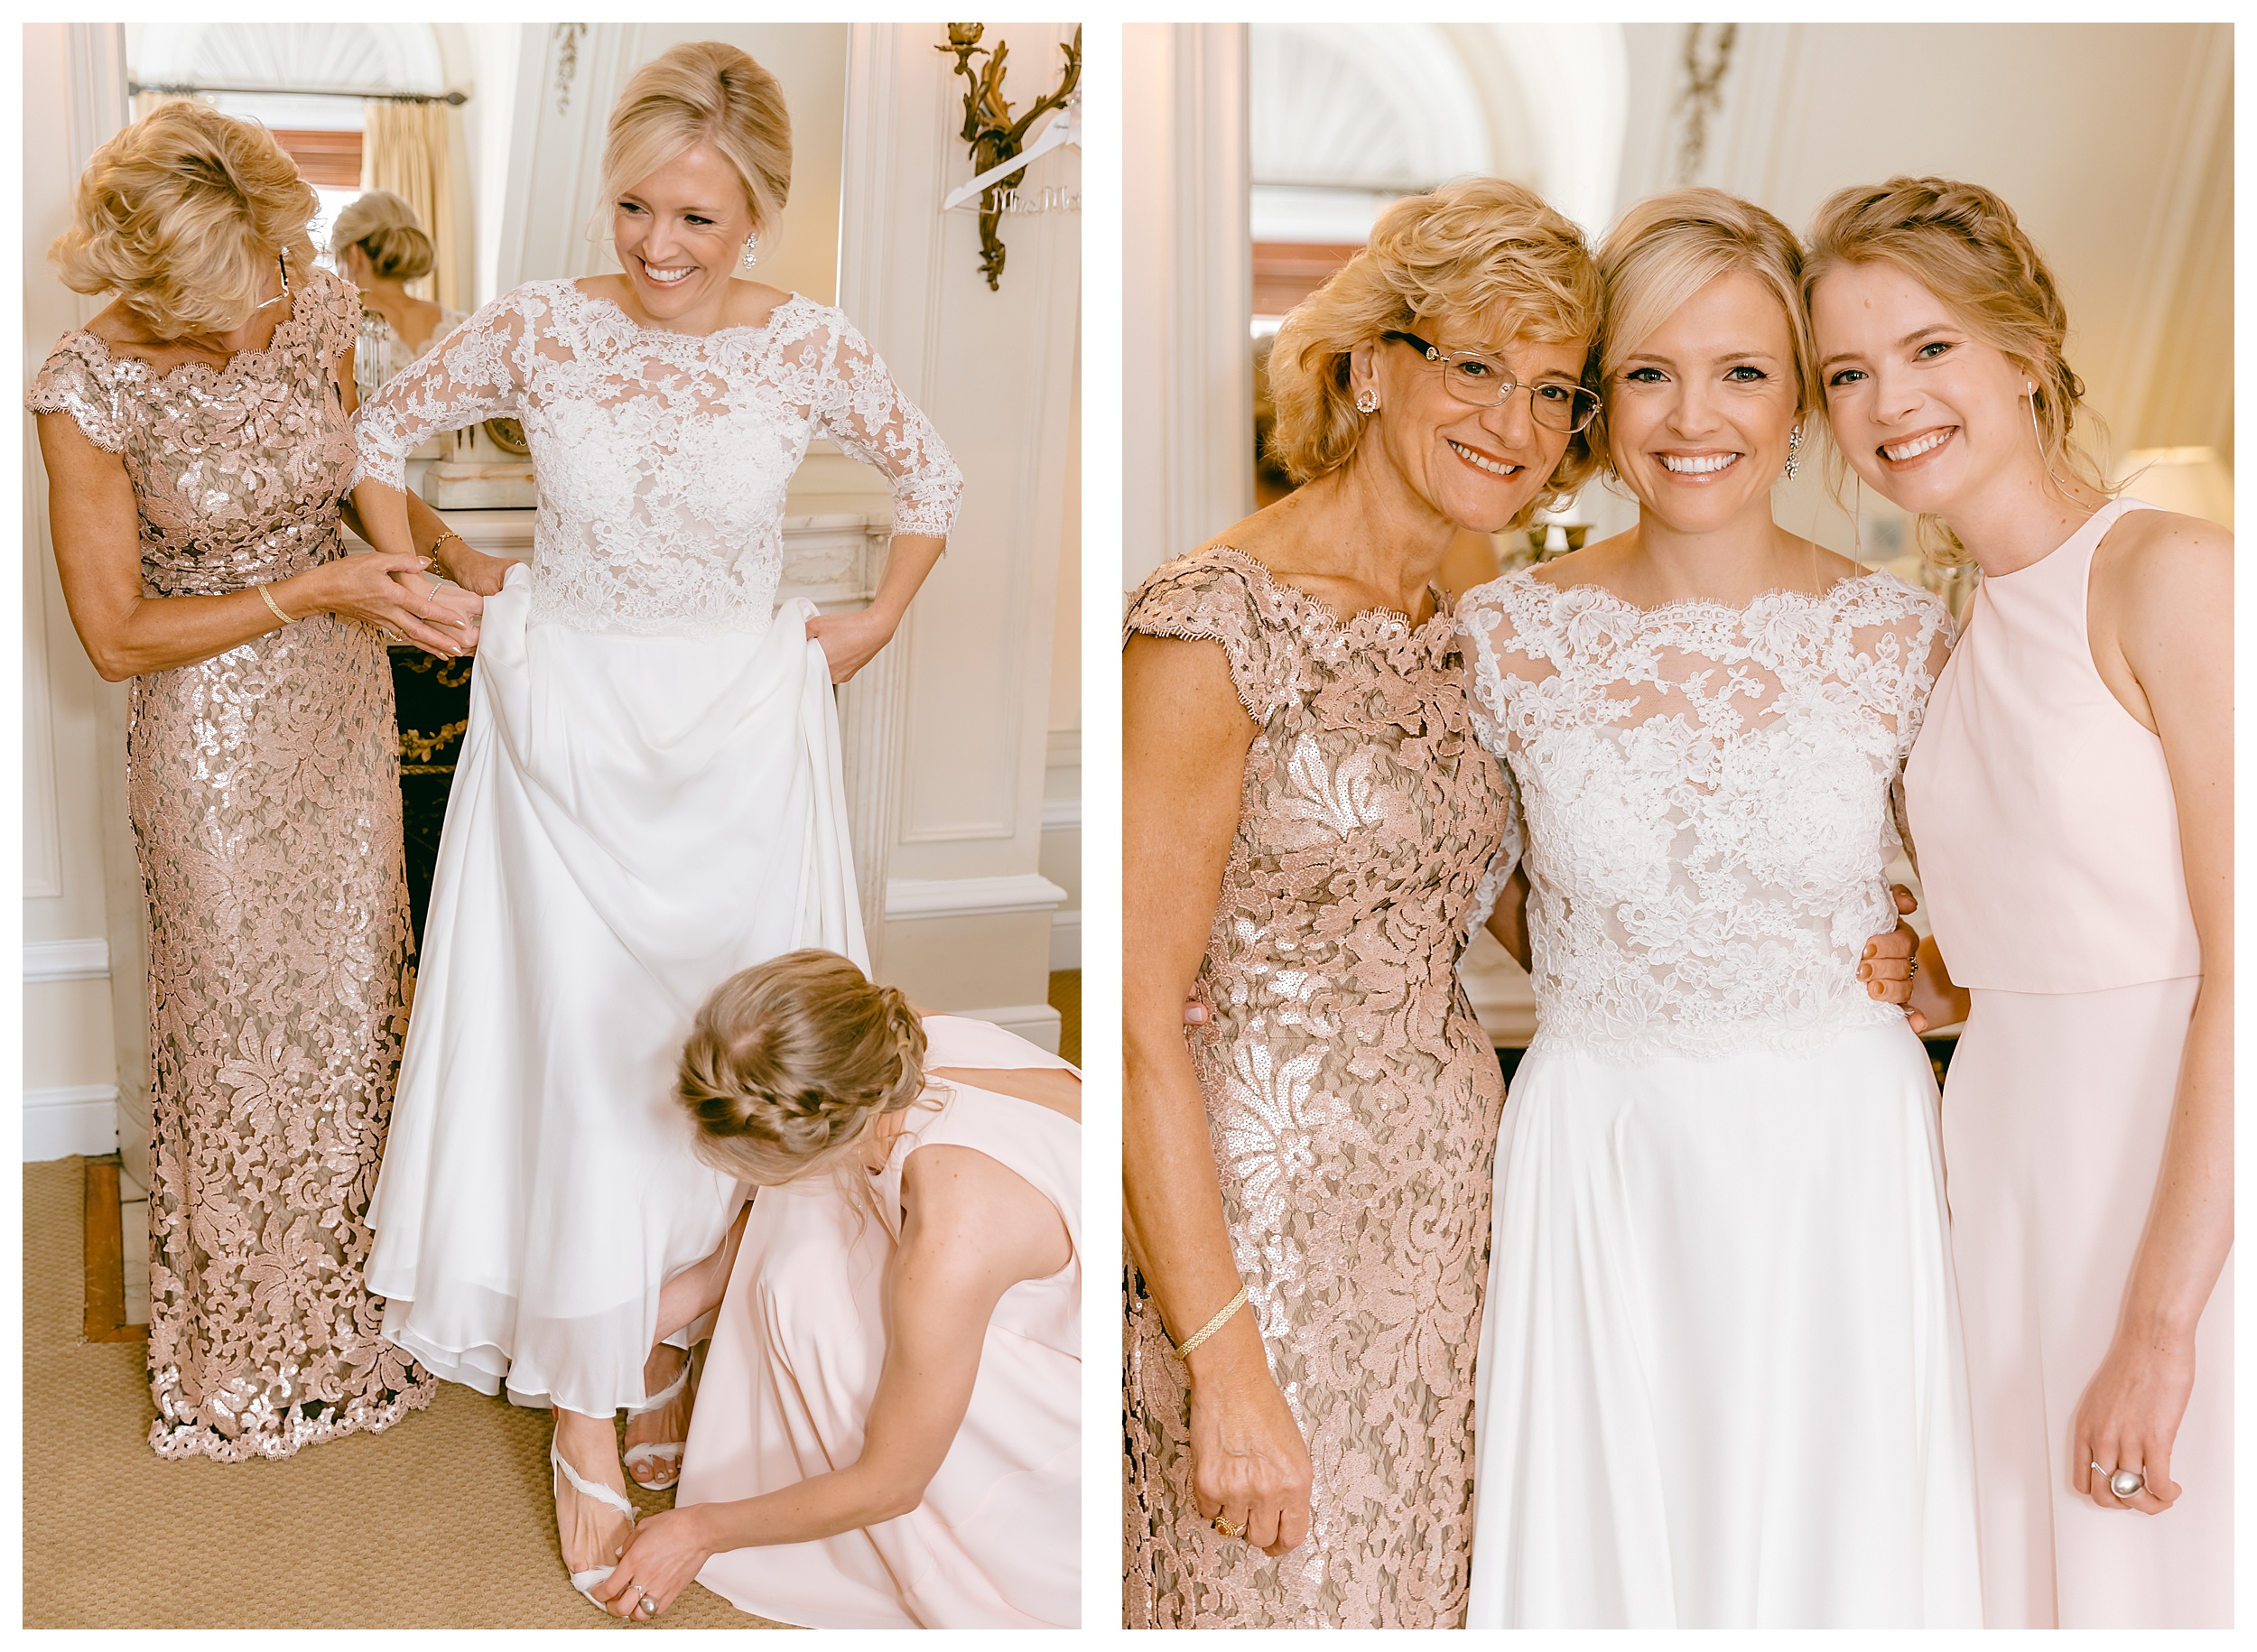 getting ready lace dress bride and mom